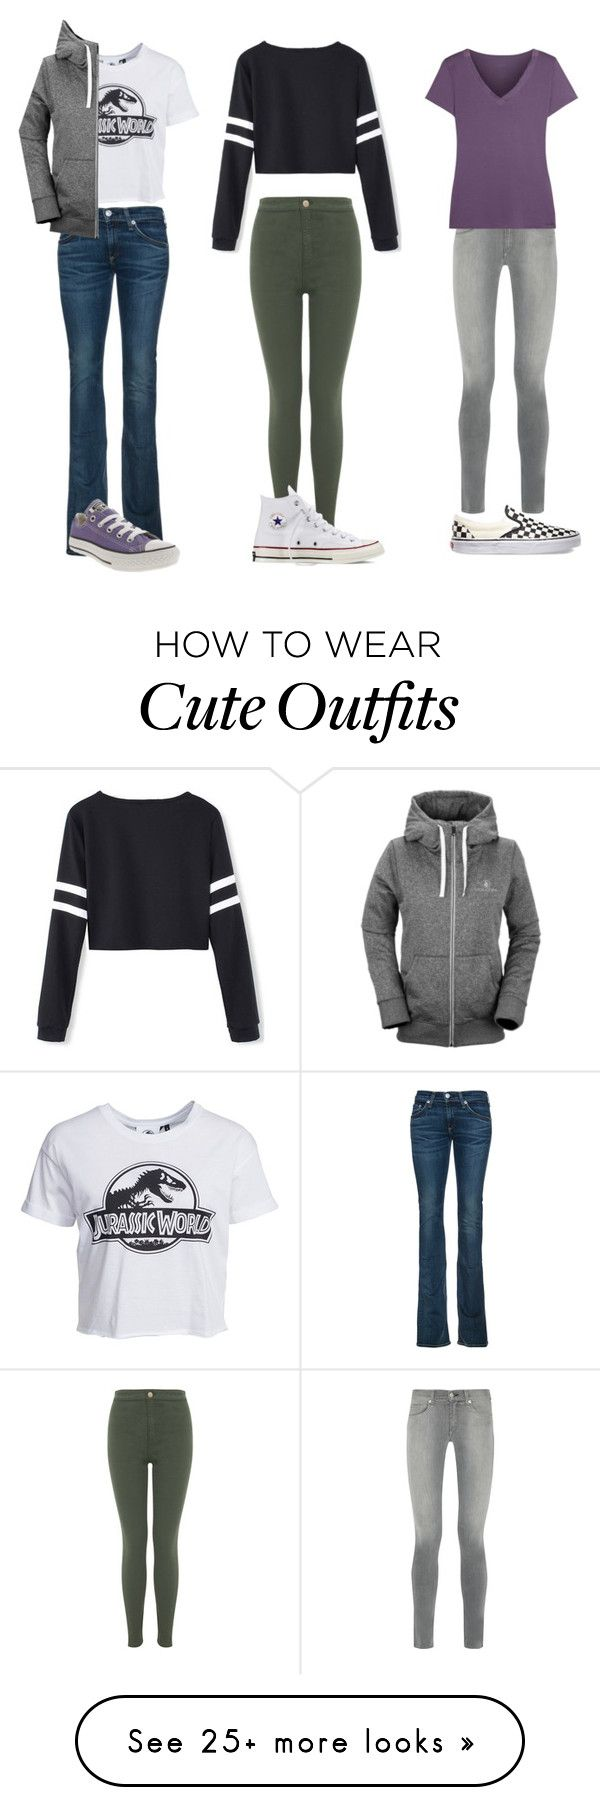 """""""3 Cute School Outfits"""" by bluejay22 on Polyvore featuring New Look, Volcom, Converse, rag & bone, Vans, Calvin Klein Underwear and Miss Selfridge"""